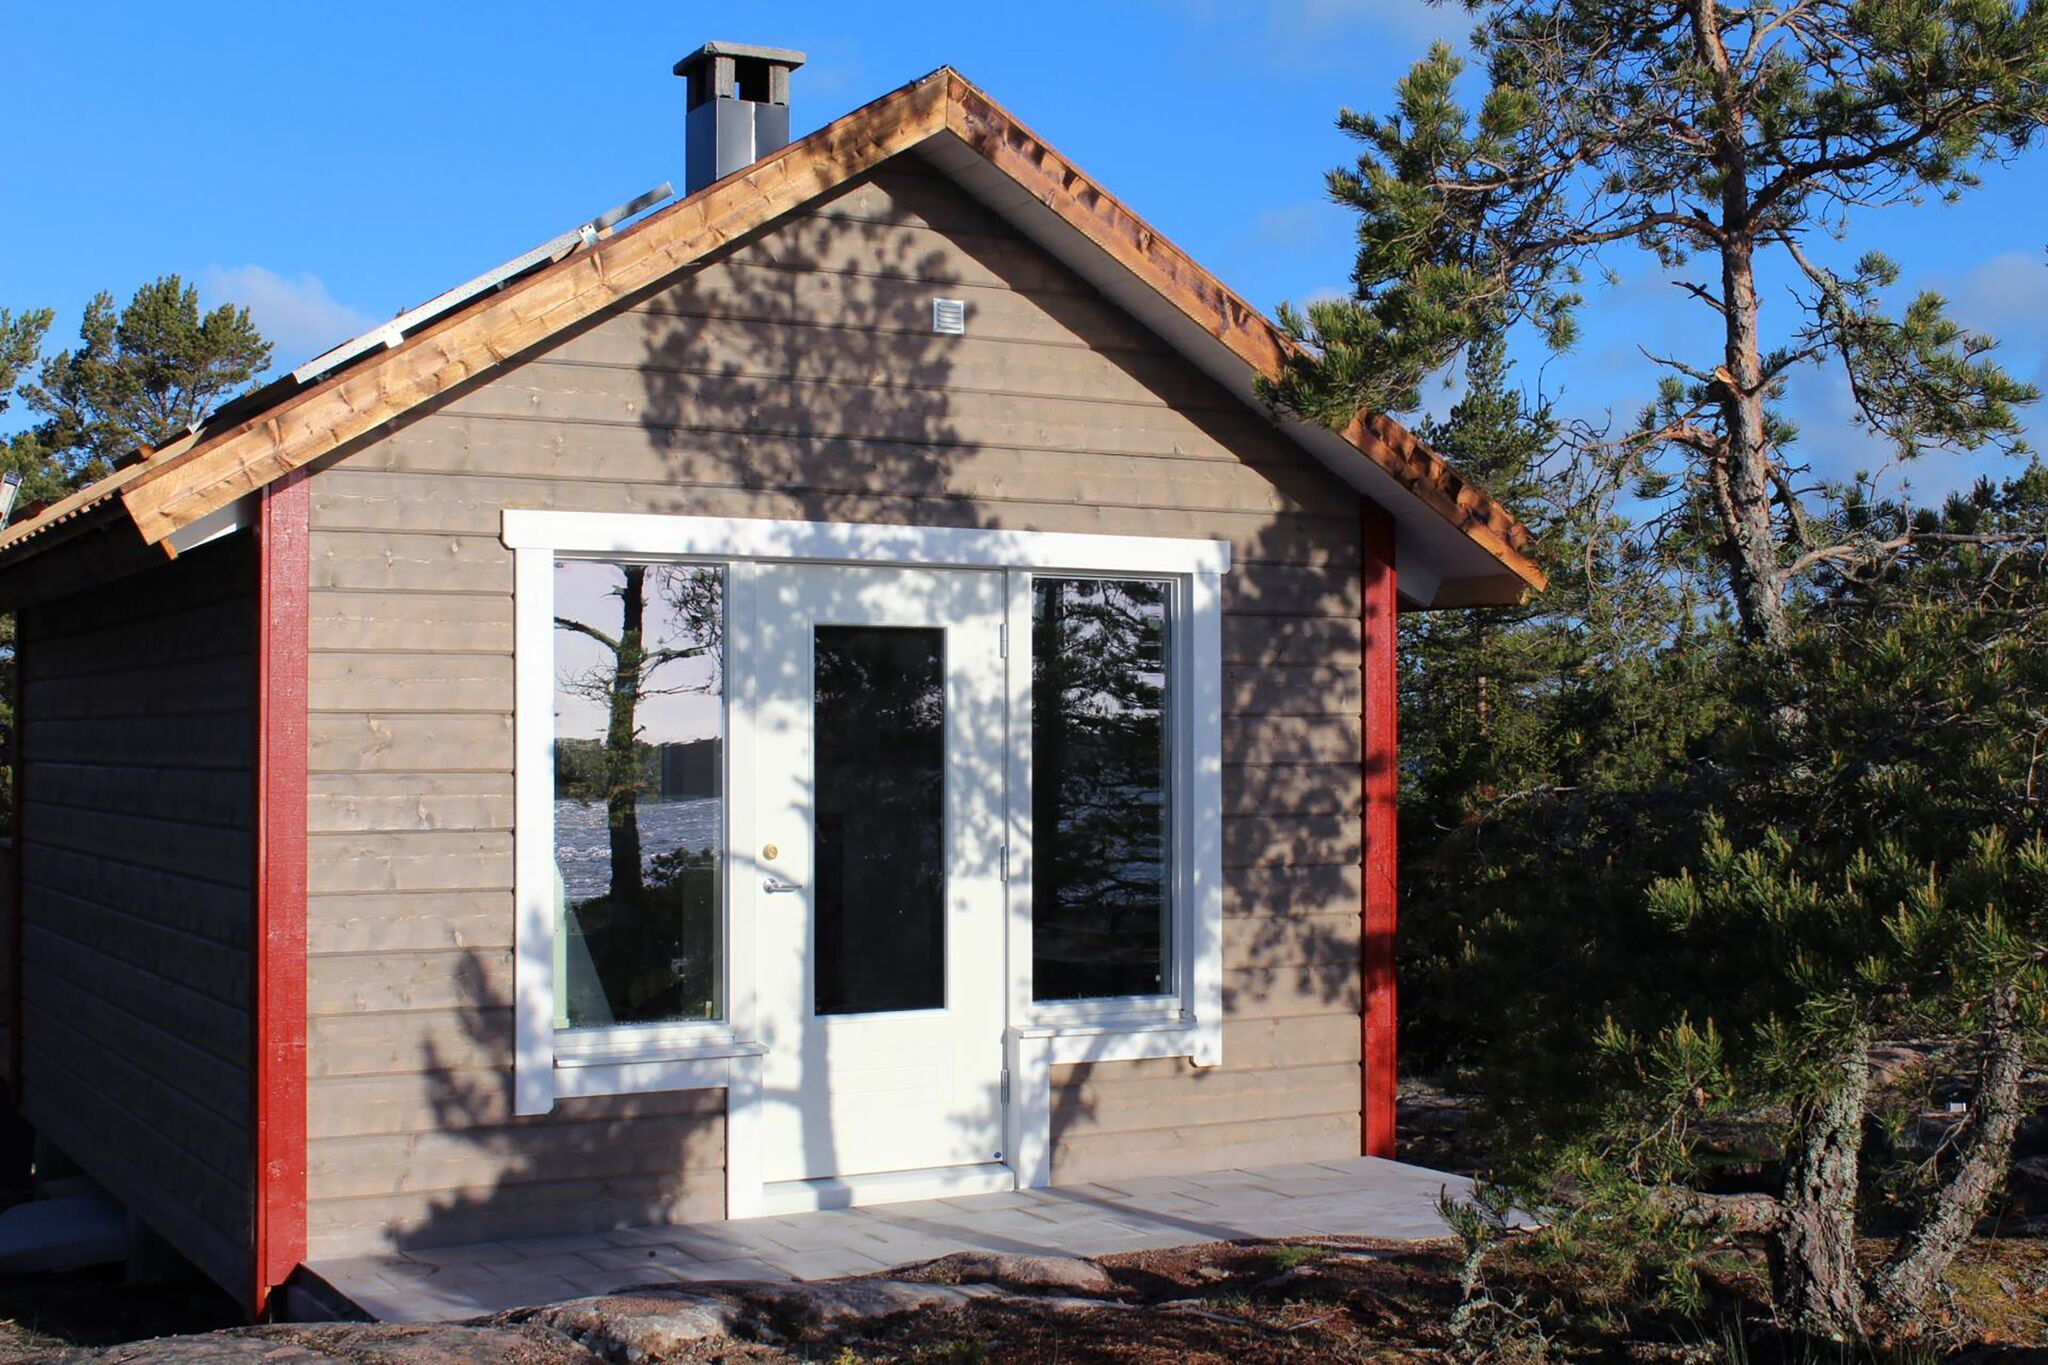 Sandösund Resort, Gyllenklobb, rent an own island